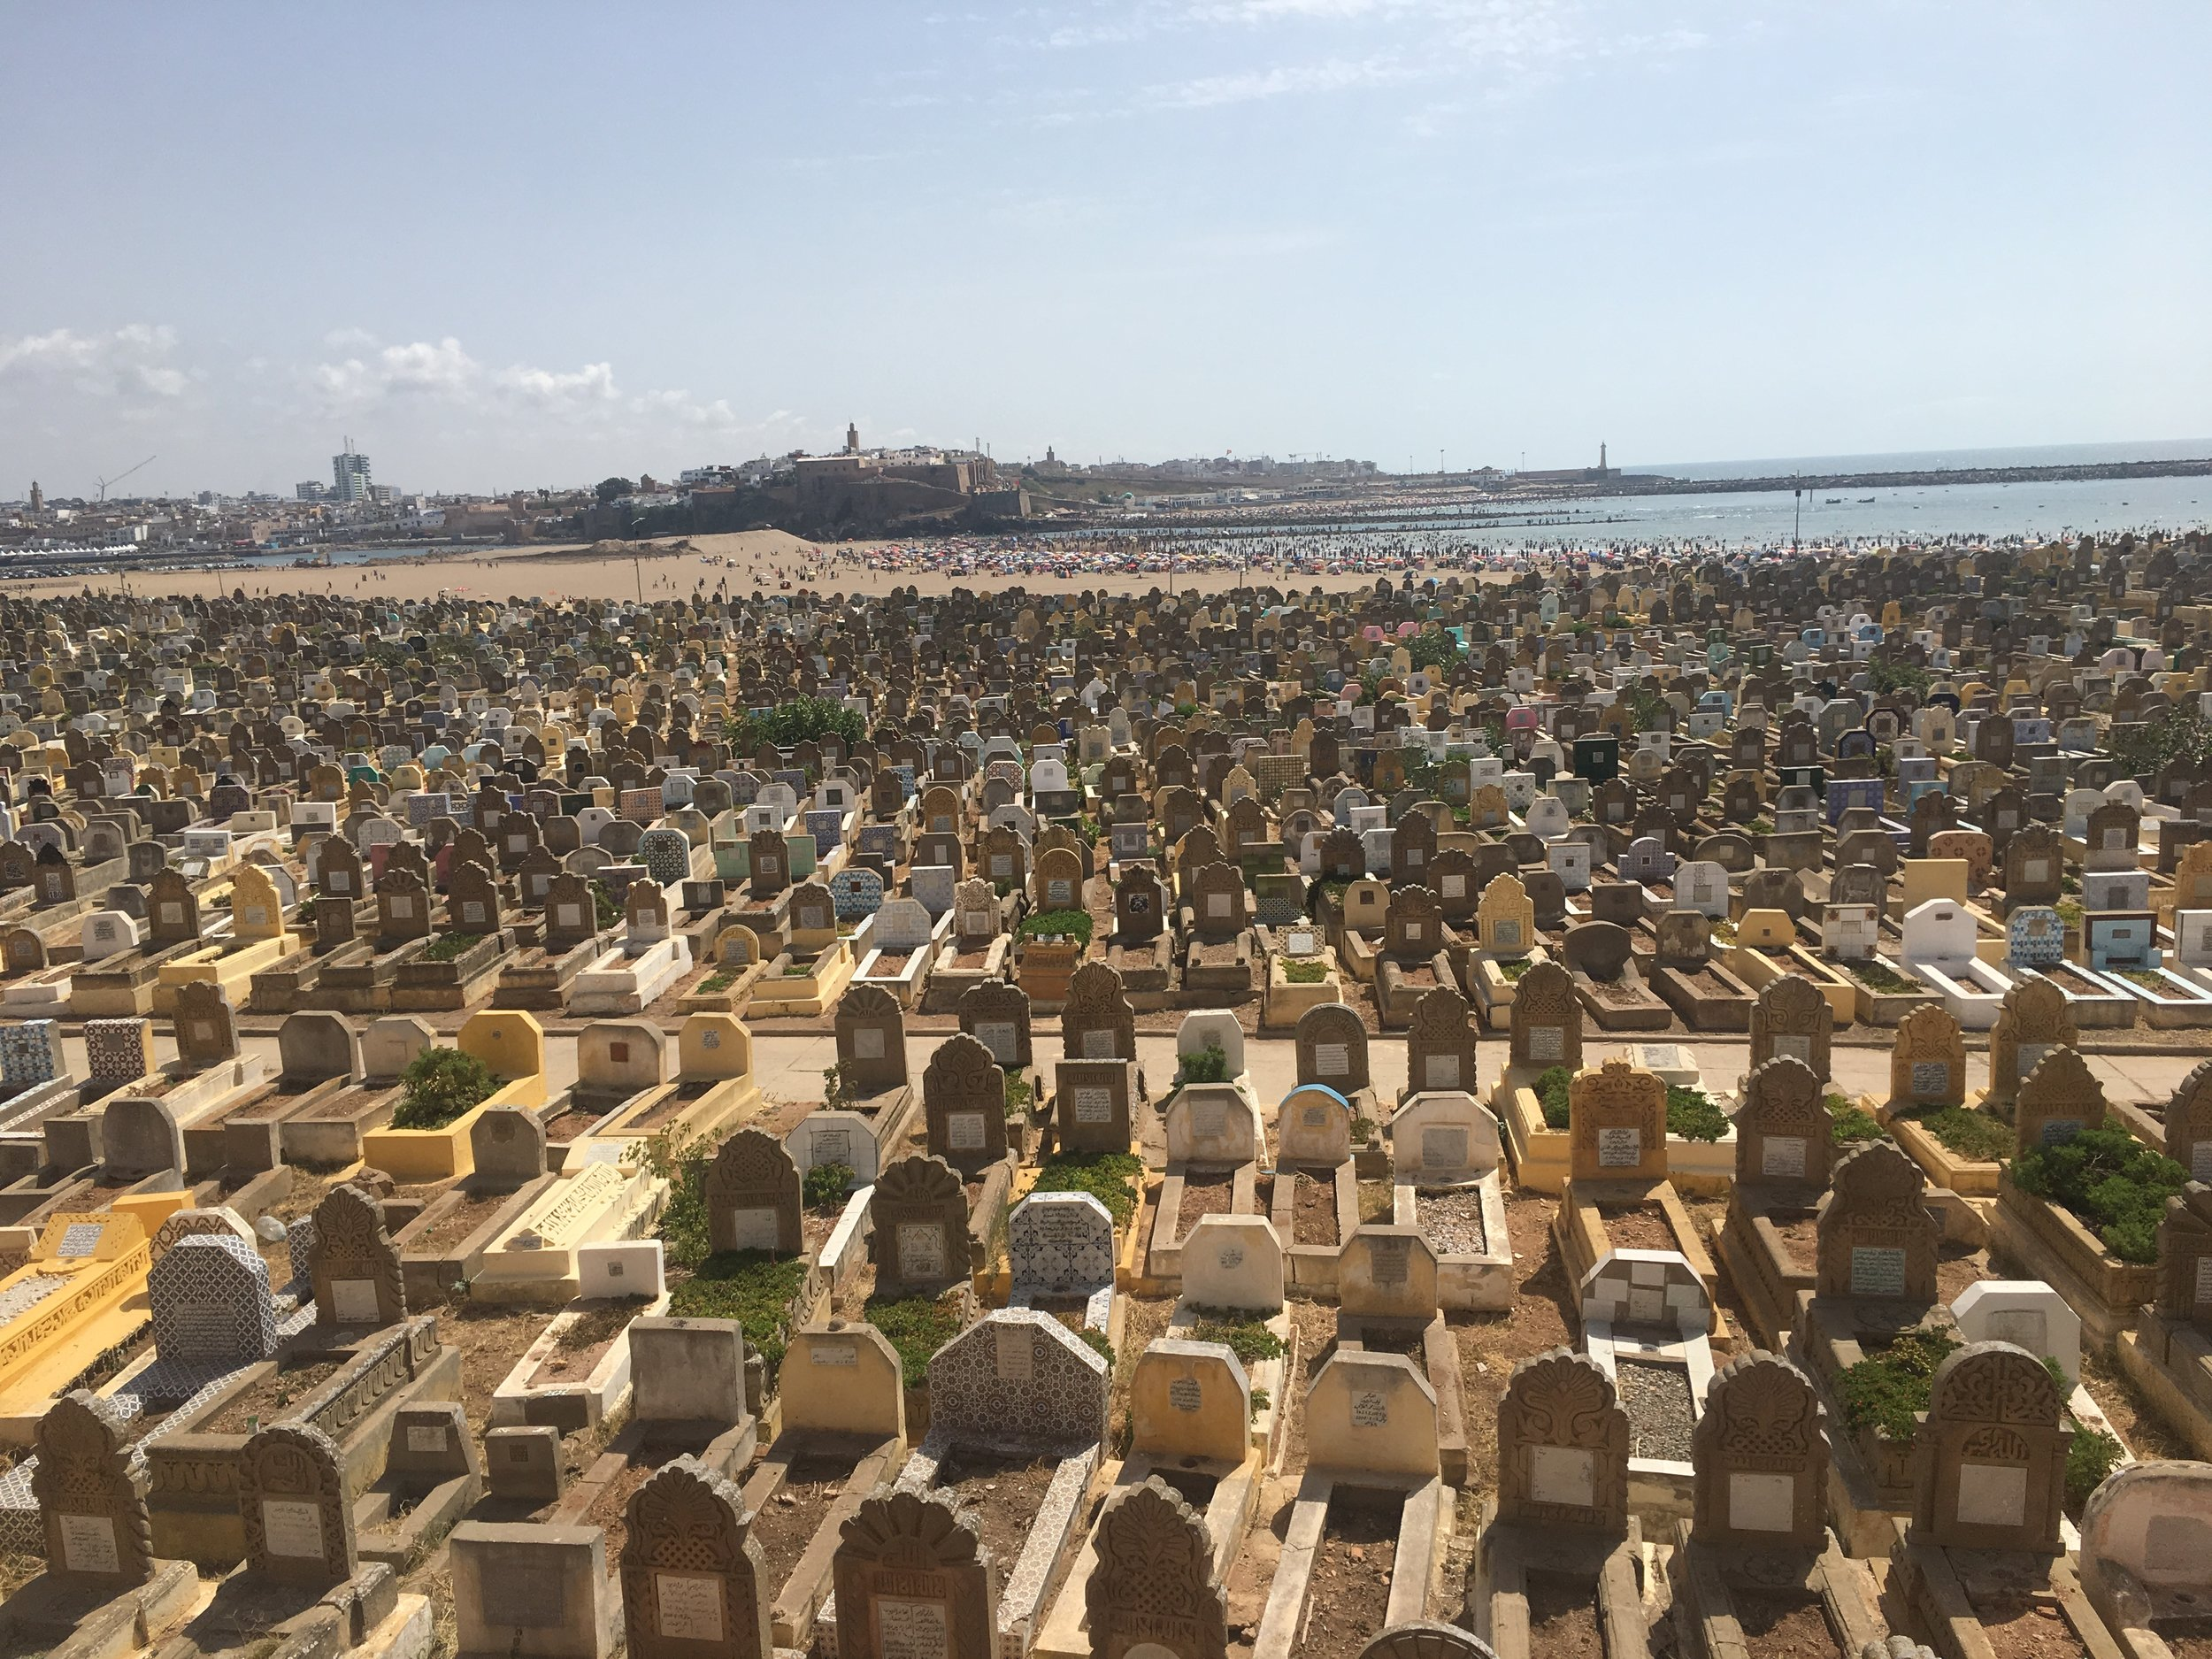 The Salé graveyard overlooks the ocean and the Oued Bou Regreg river.